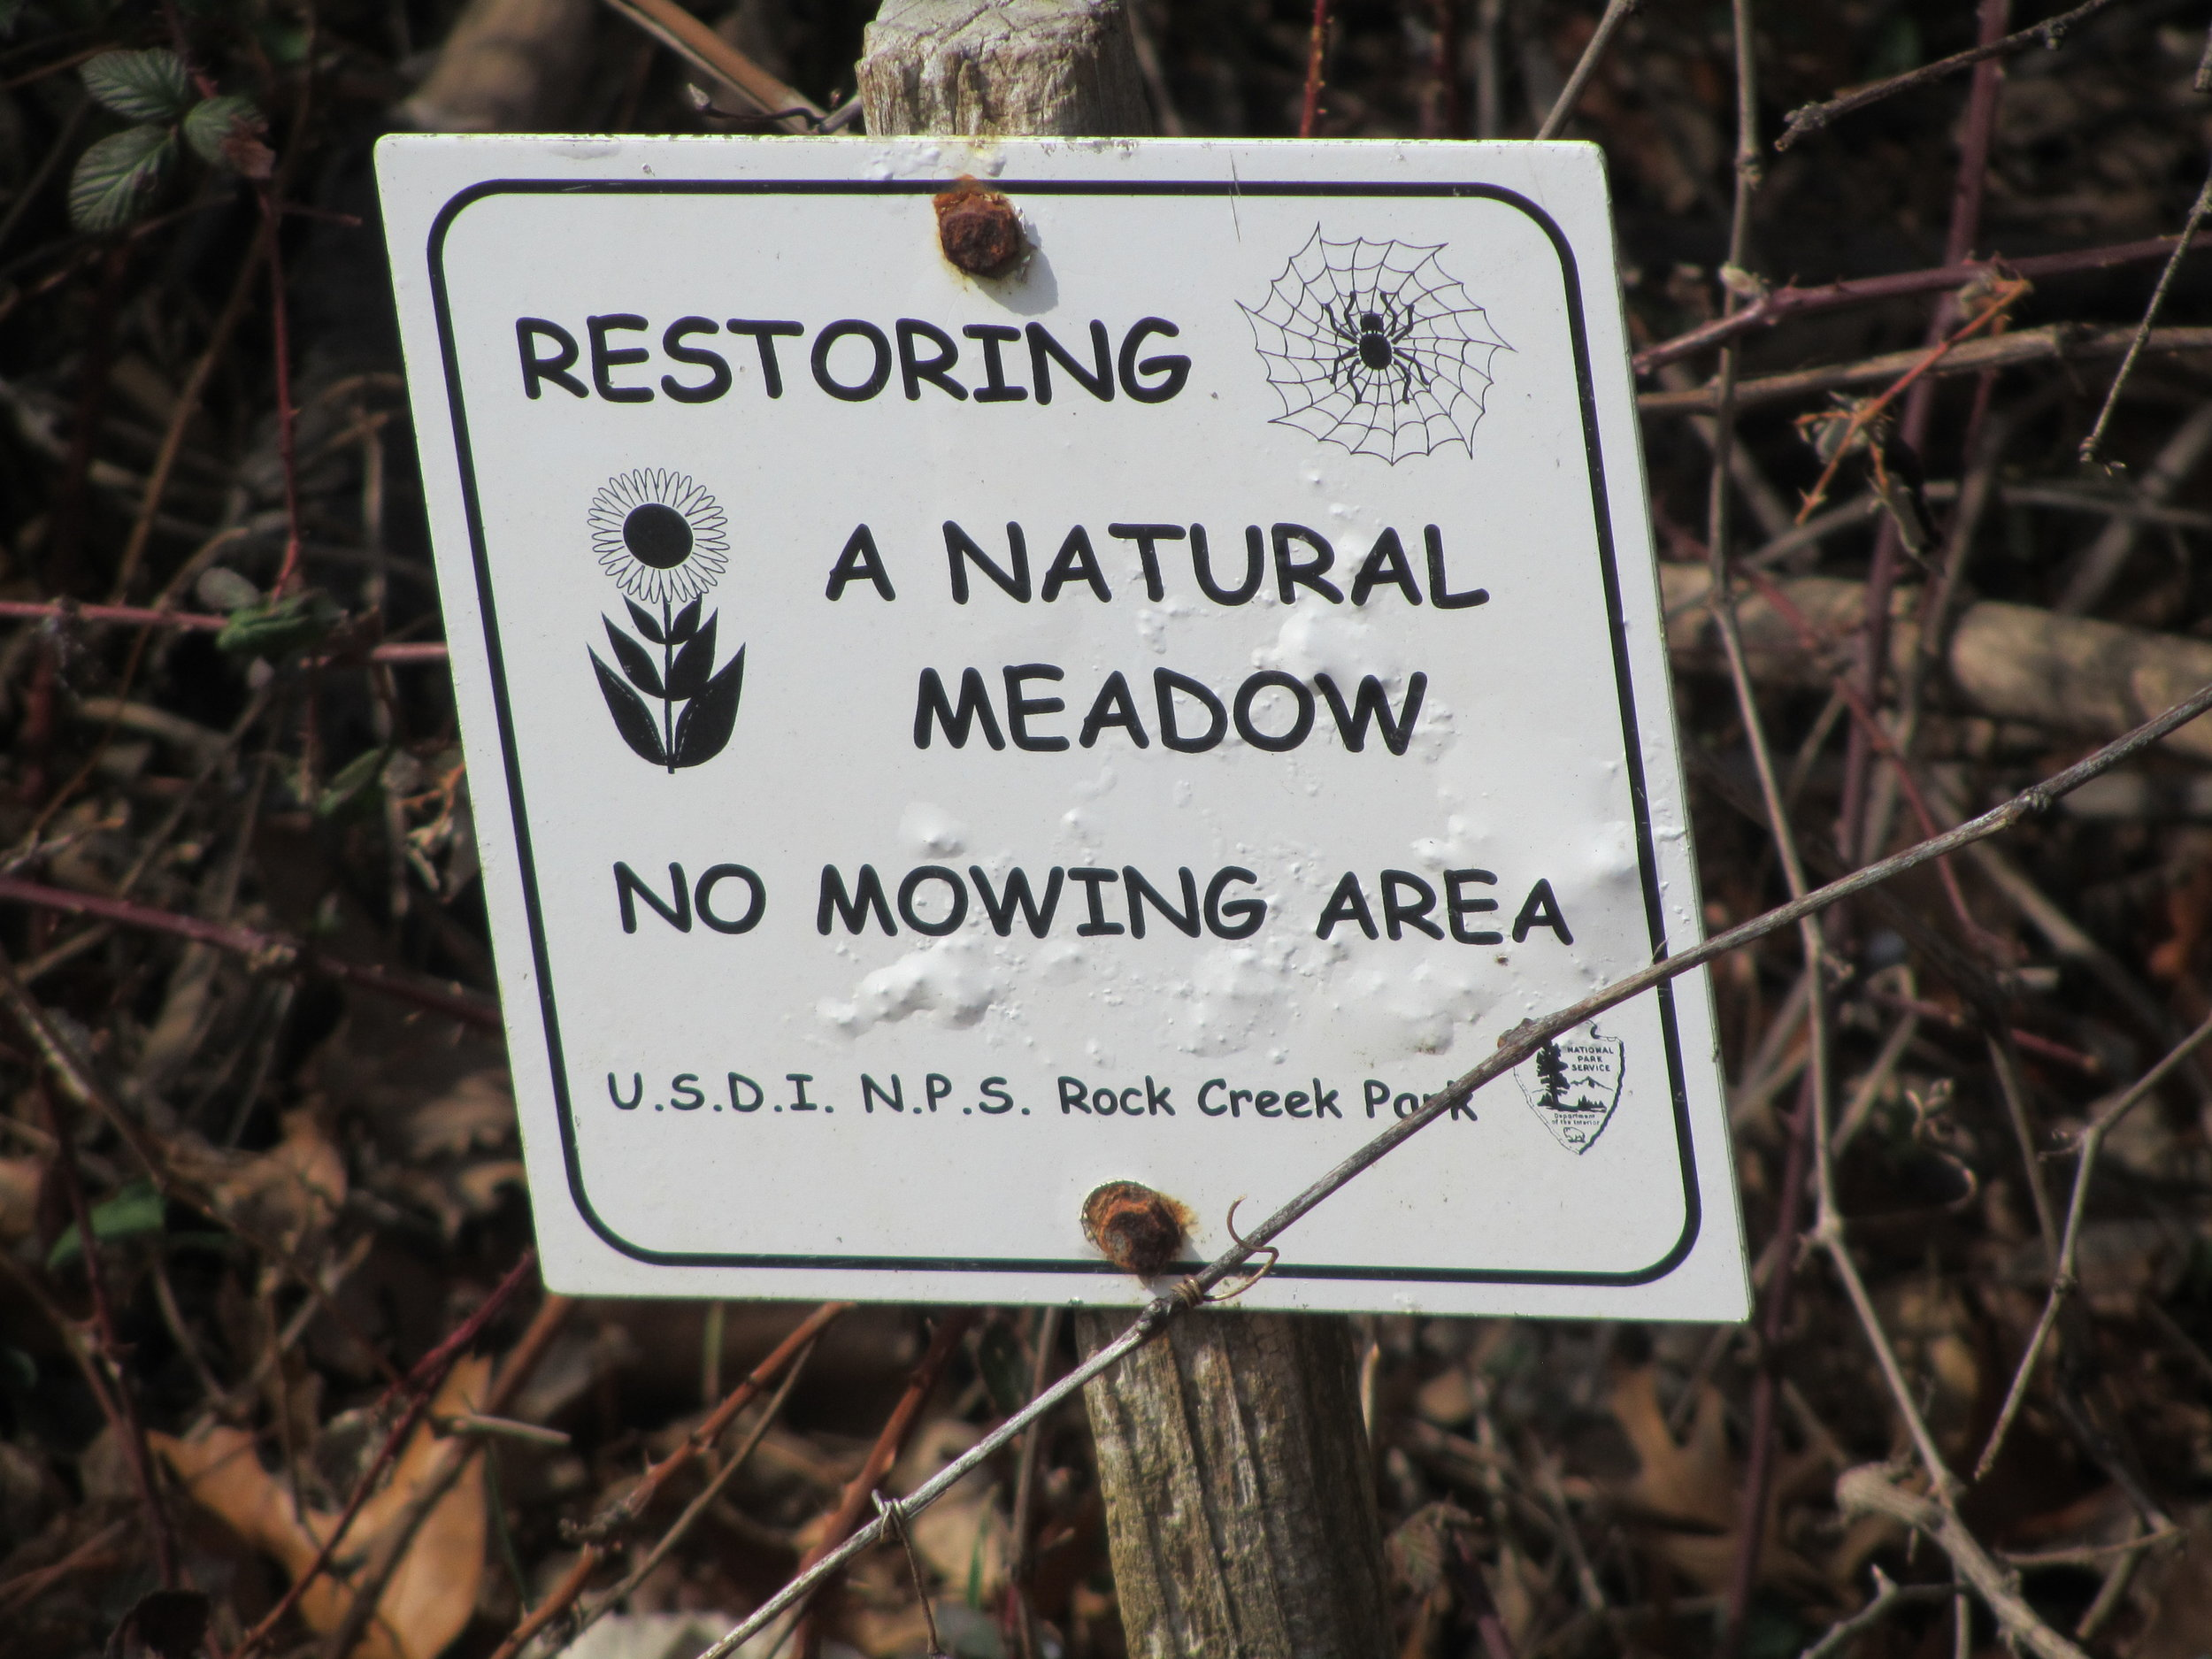 Sign by the wooded area along 1st Pl, NE